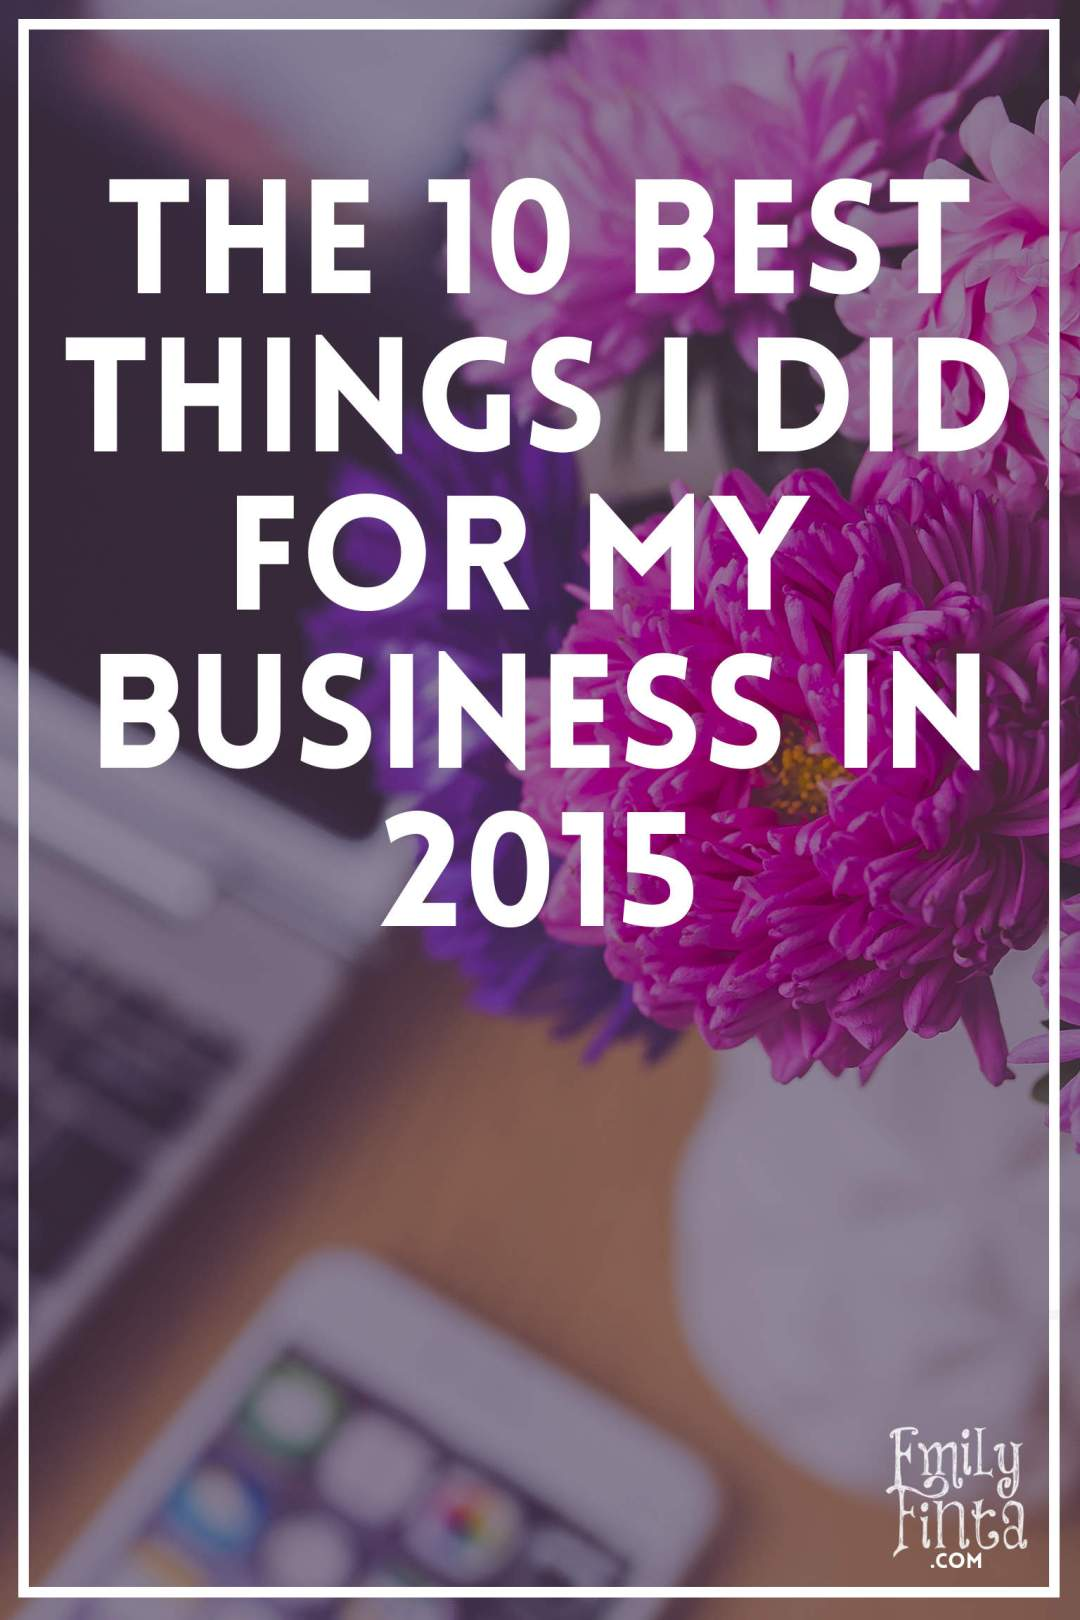 Emily Finta - The 10 Best Things I Did for My Business in 2015